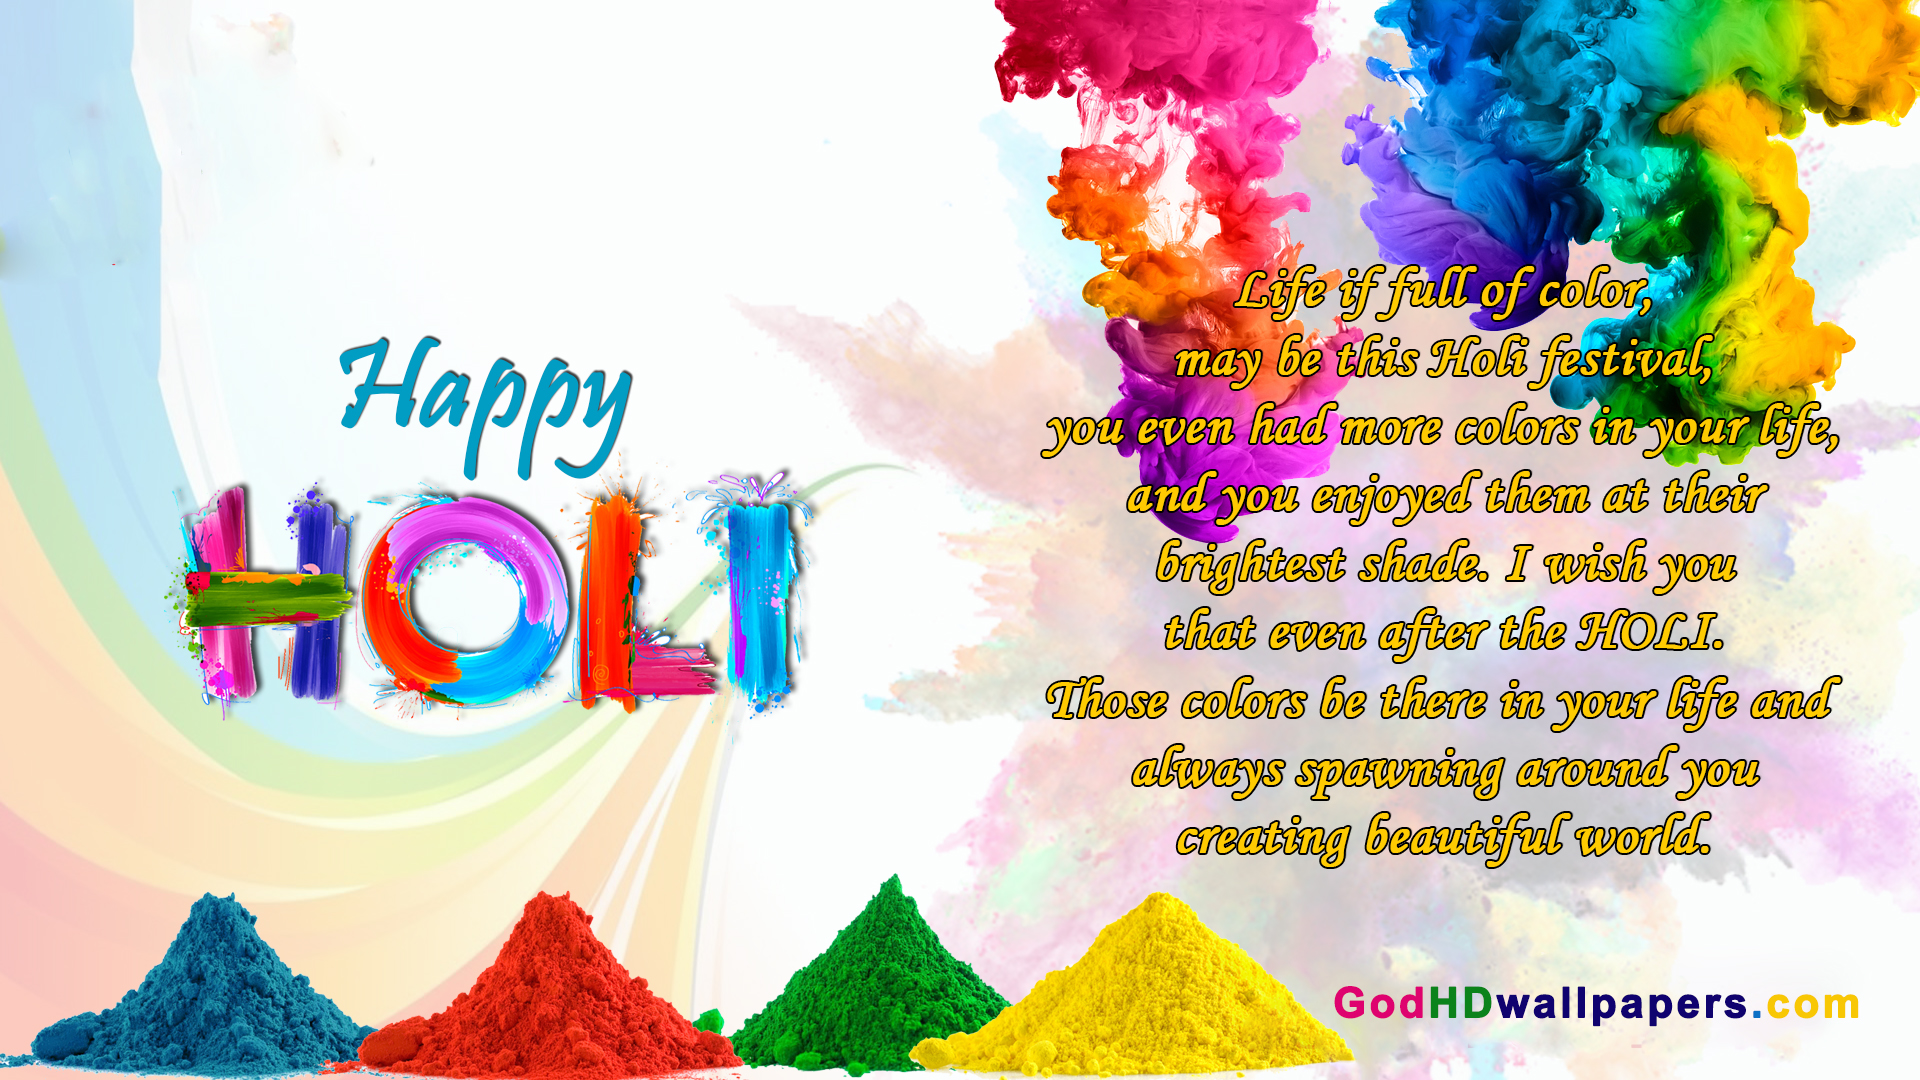 Latest Holi Images Free Download For Whatsapp